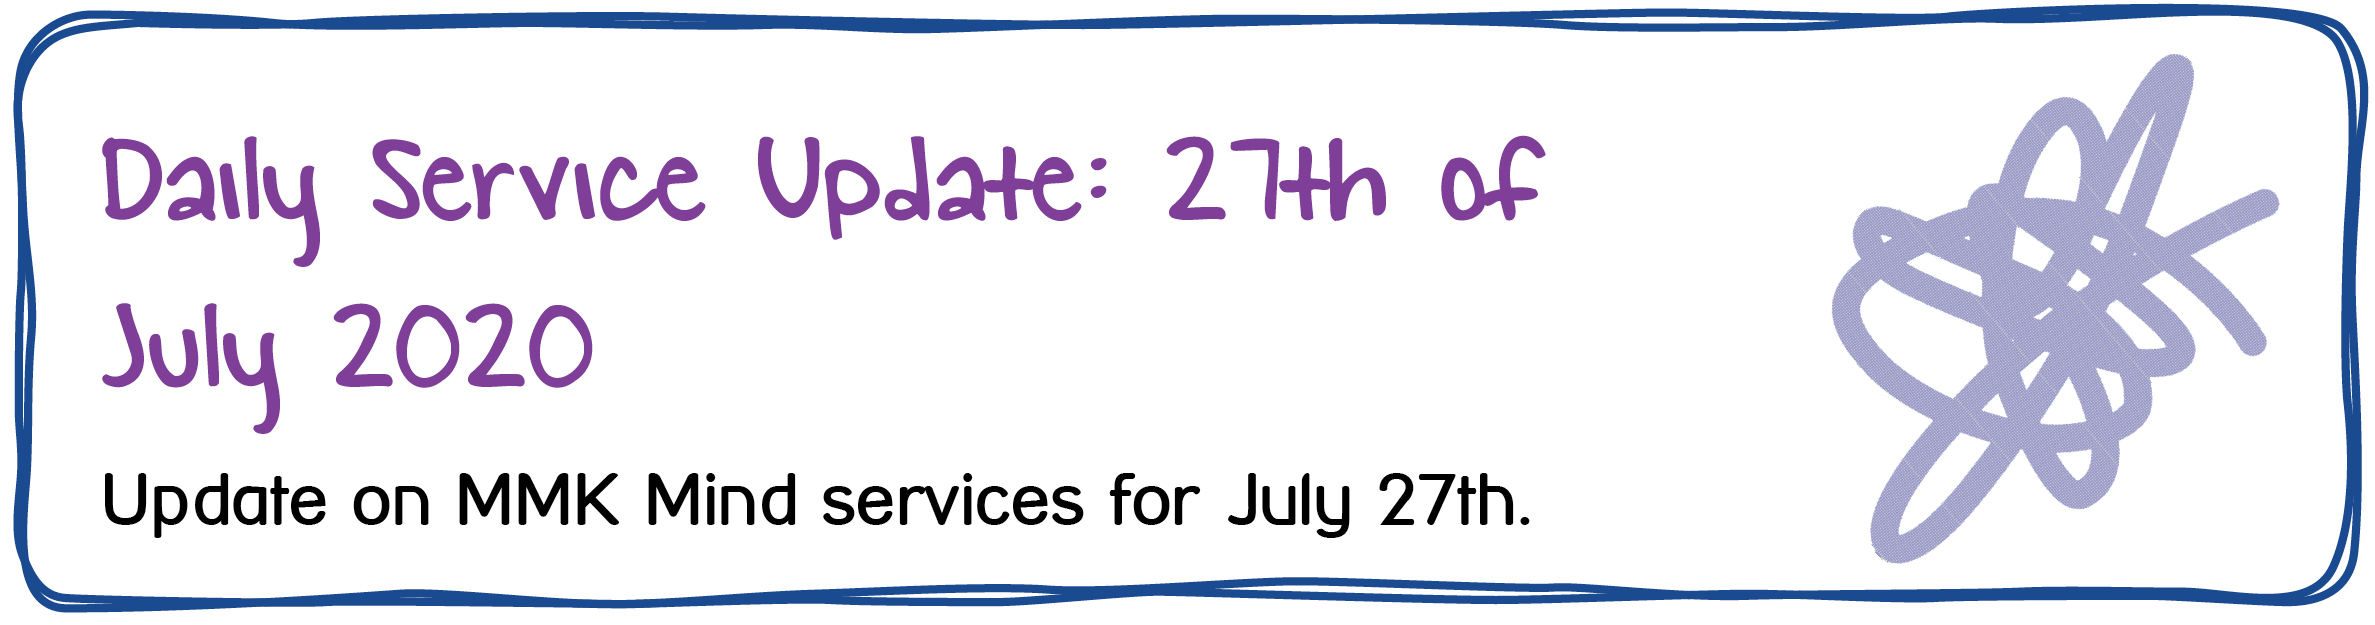 Daily Service Update: 27th of July 2020. Update on MMK Mind services for July 27th.